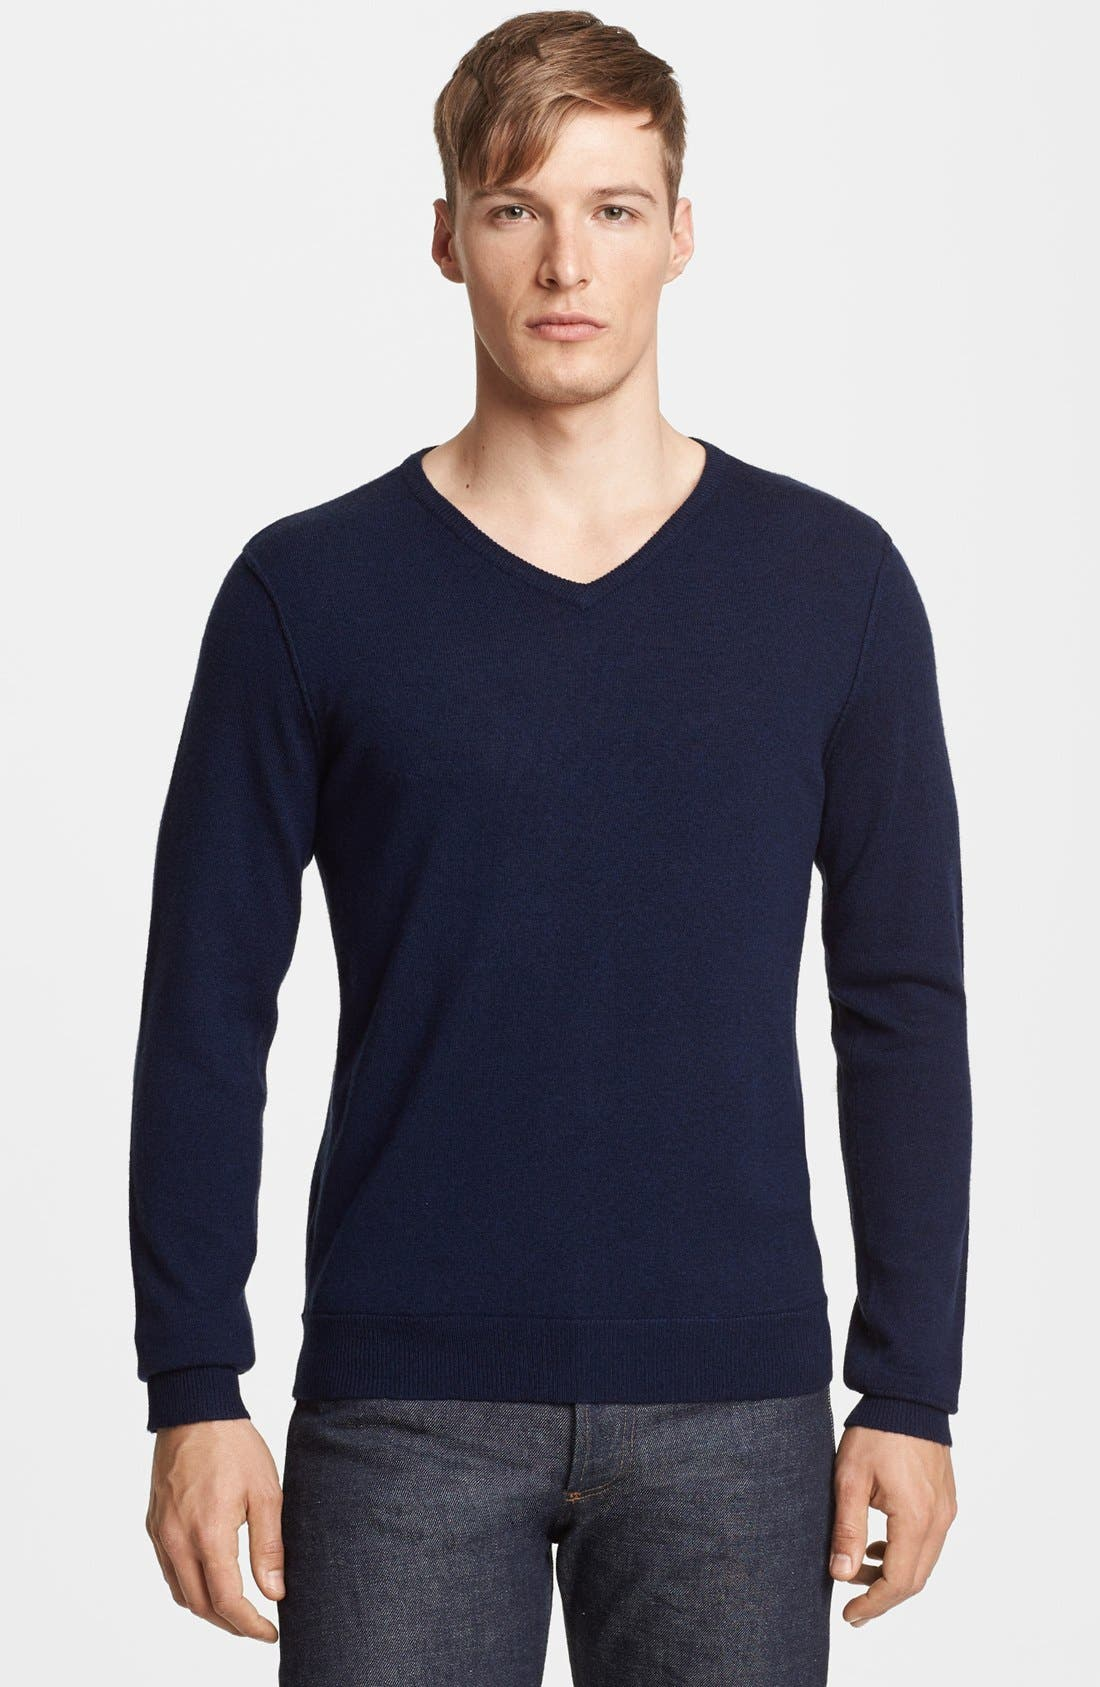 Alternate Image 1 Selected - rag & bone 'Abingdon' V-Neck Merino Wool Sweater